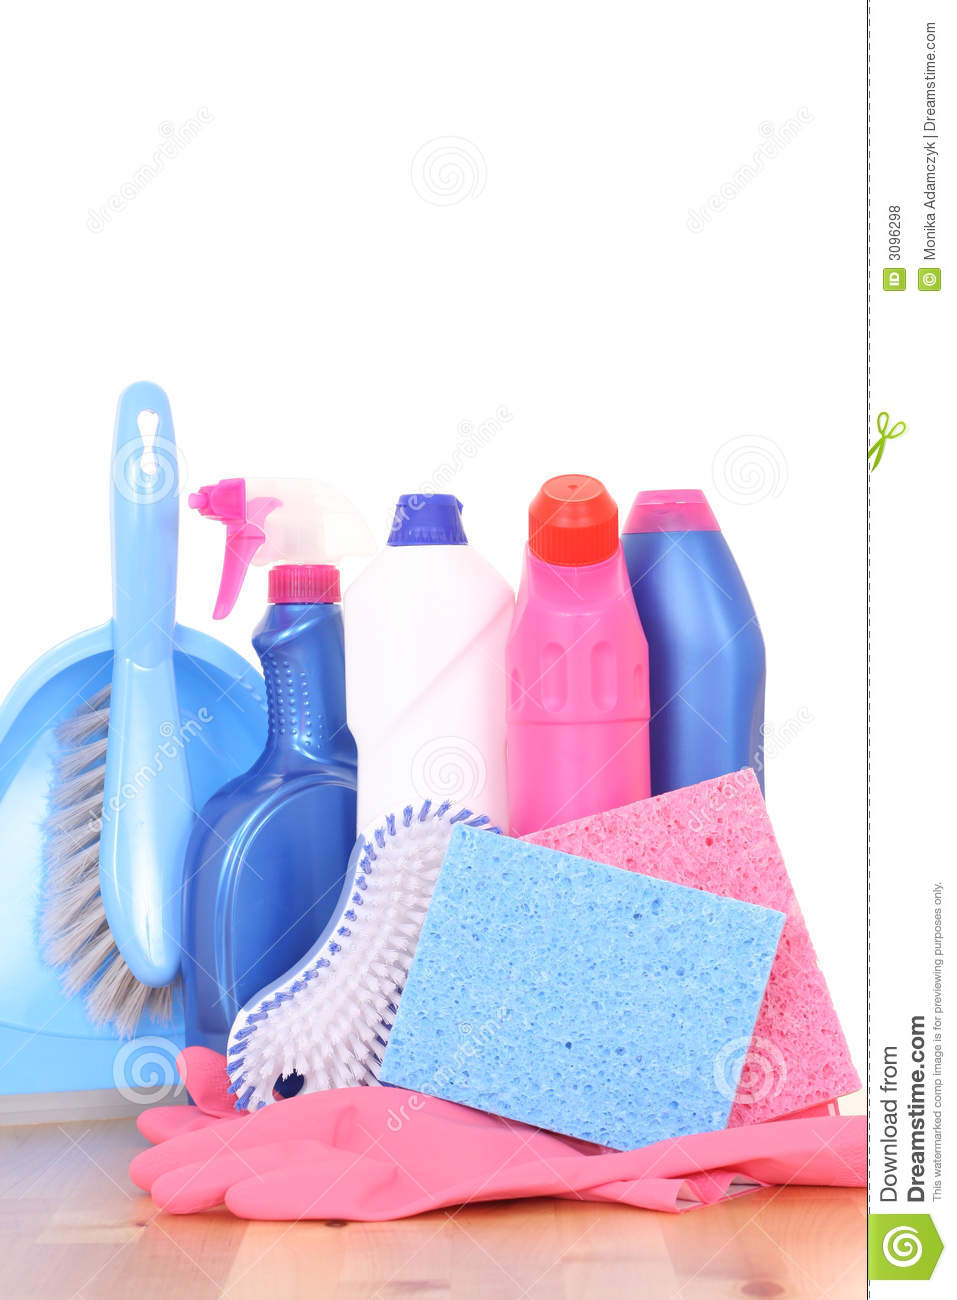 Cleaning house royalty free stock photos image 3096298 for House cleaning stock photos